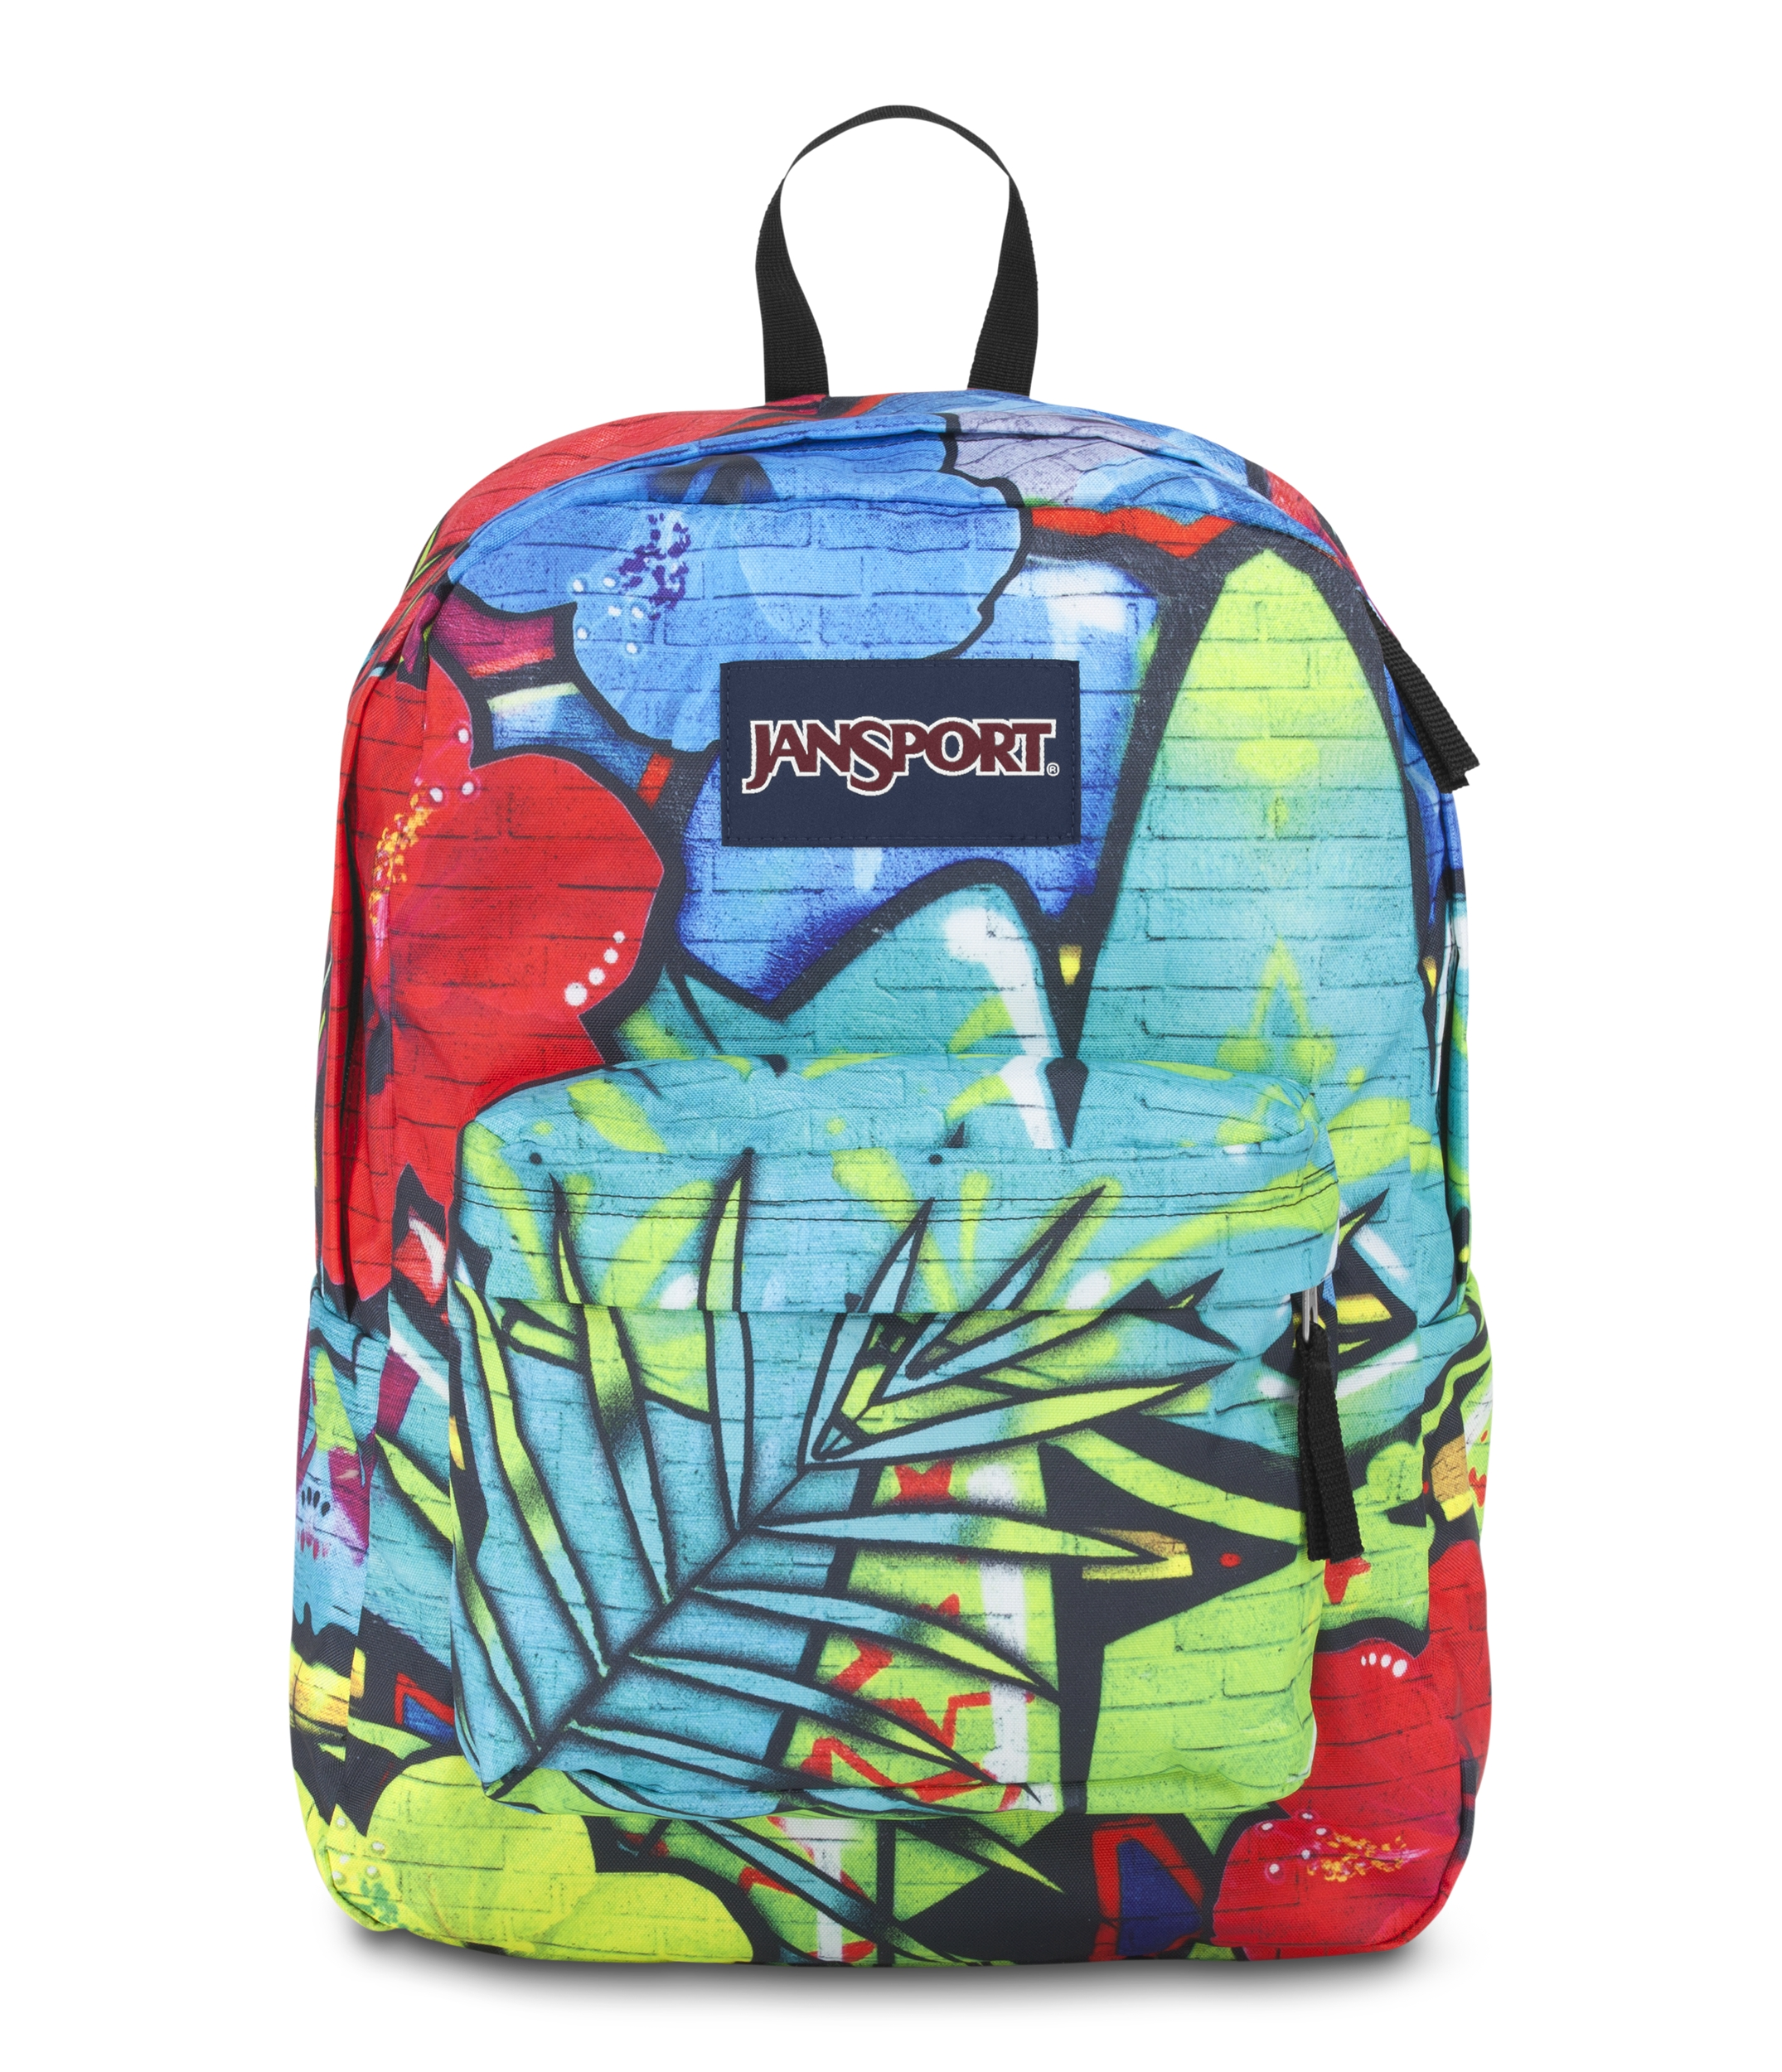 Staples Debuts New Trends for 2016 Back-to-School Supplies at the ... e0780d3f0c35f